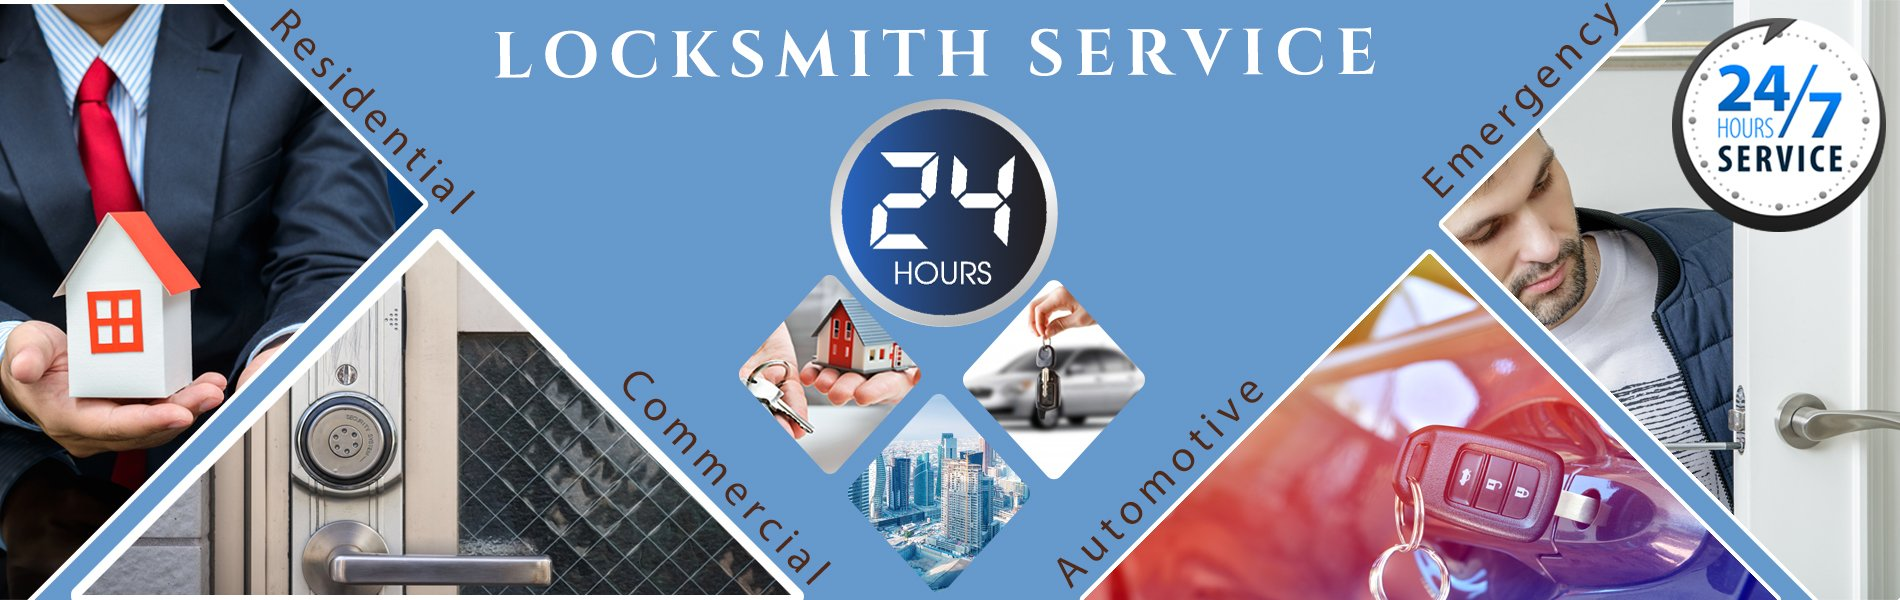 State Locksmith Services Seattle, WA (866) 274-6030